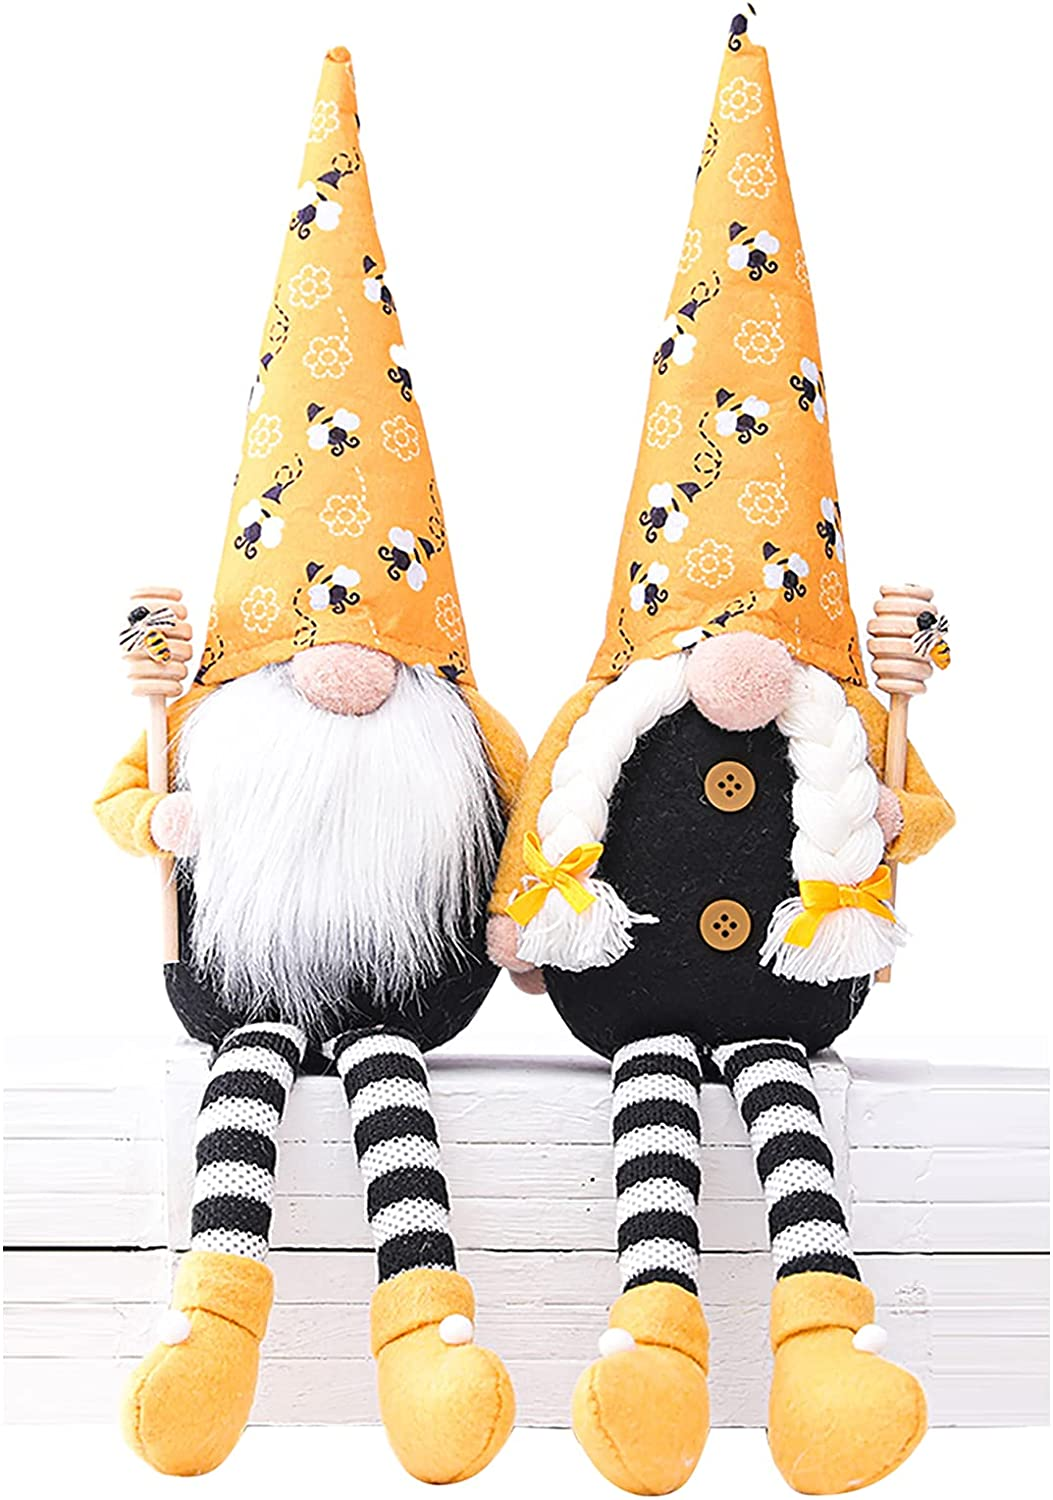 2PCS Bumble Bee Gnome Scandinavian Tomte Nisse Dwarf Swedish Figurines Bee Elf Home Farmhouse Kitchen Decor Bee Party Gift Birthday Present Tiered Tray Decorations (MFCT)